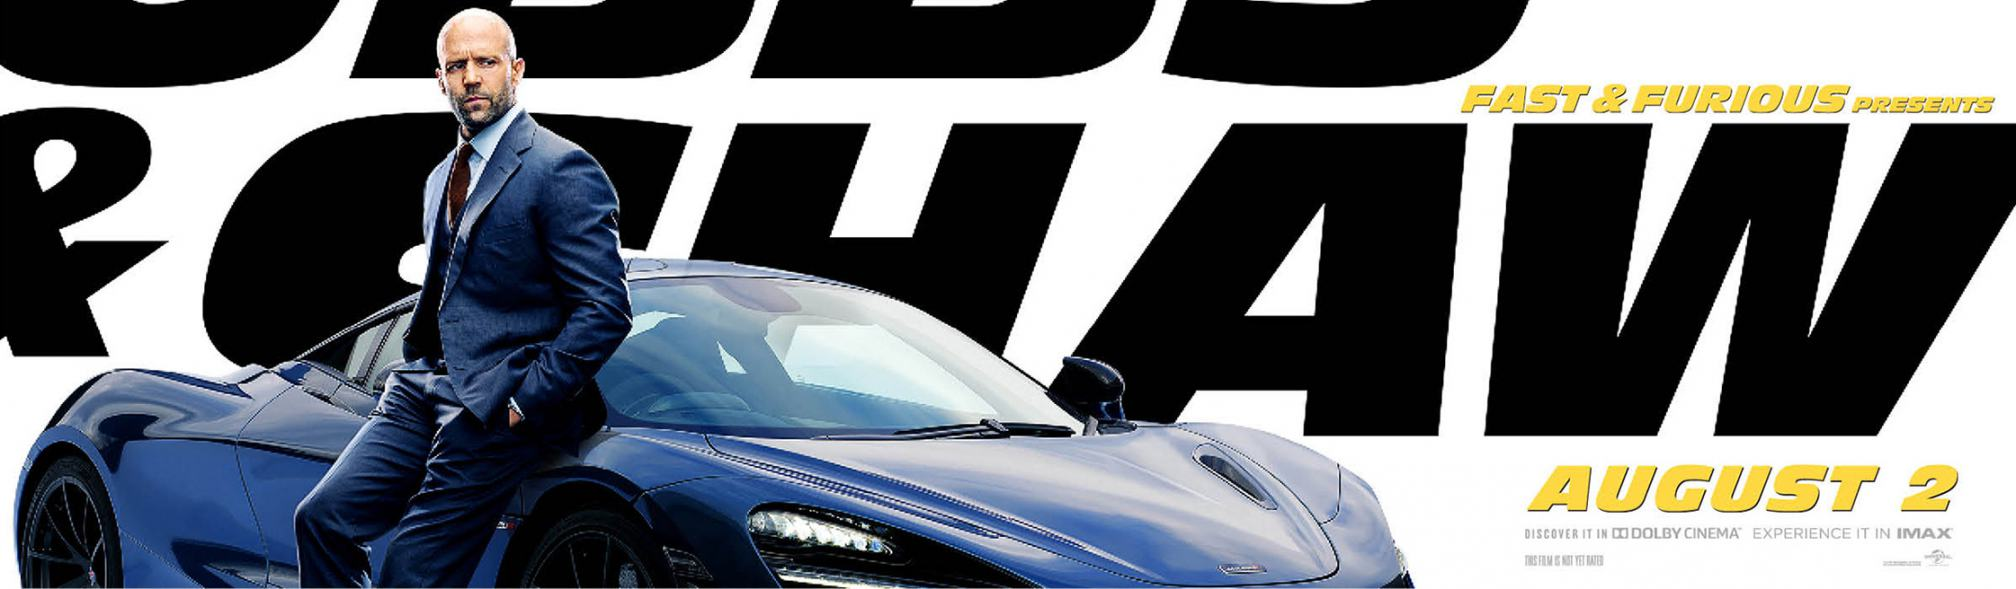 Fast & Furious Presents: Hobbs & Shaw Poster #4